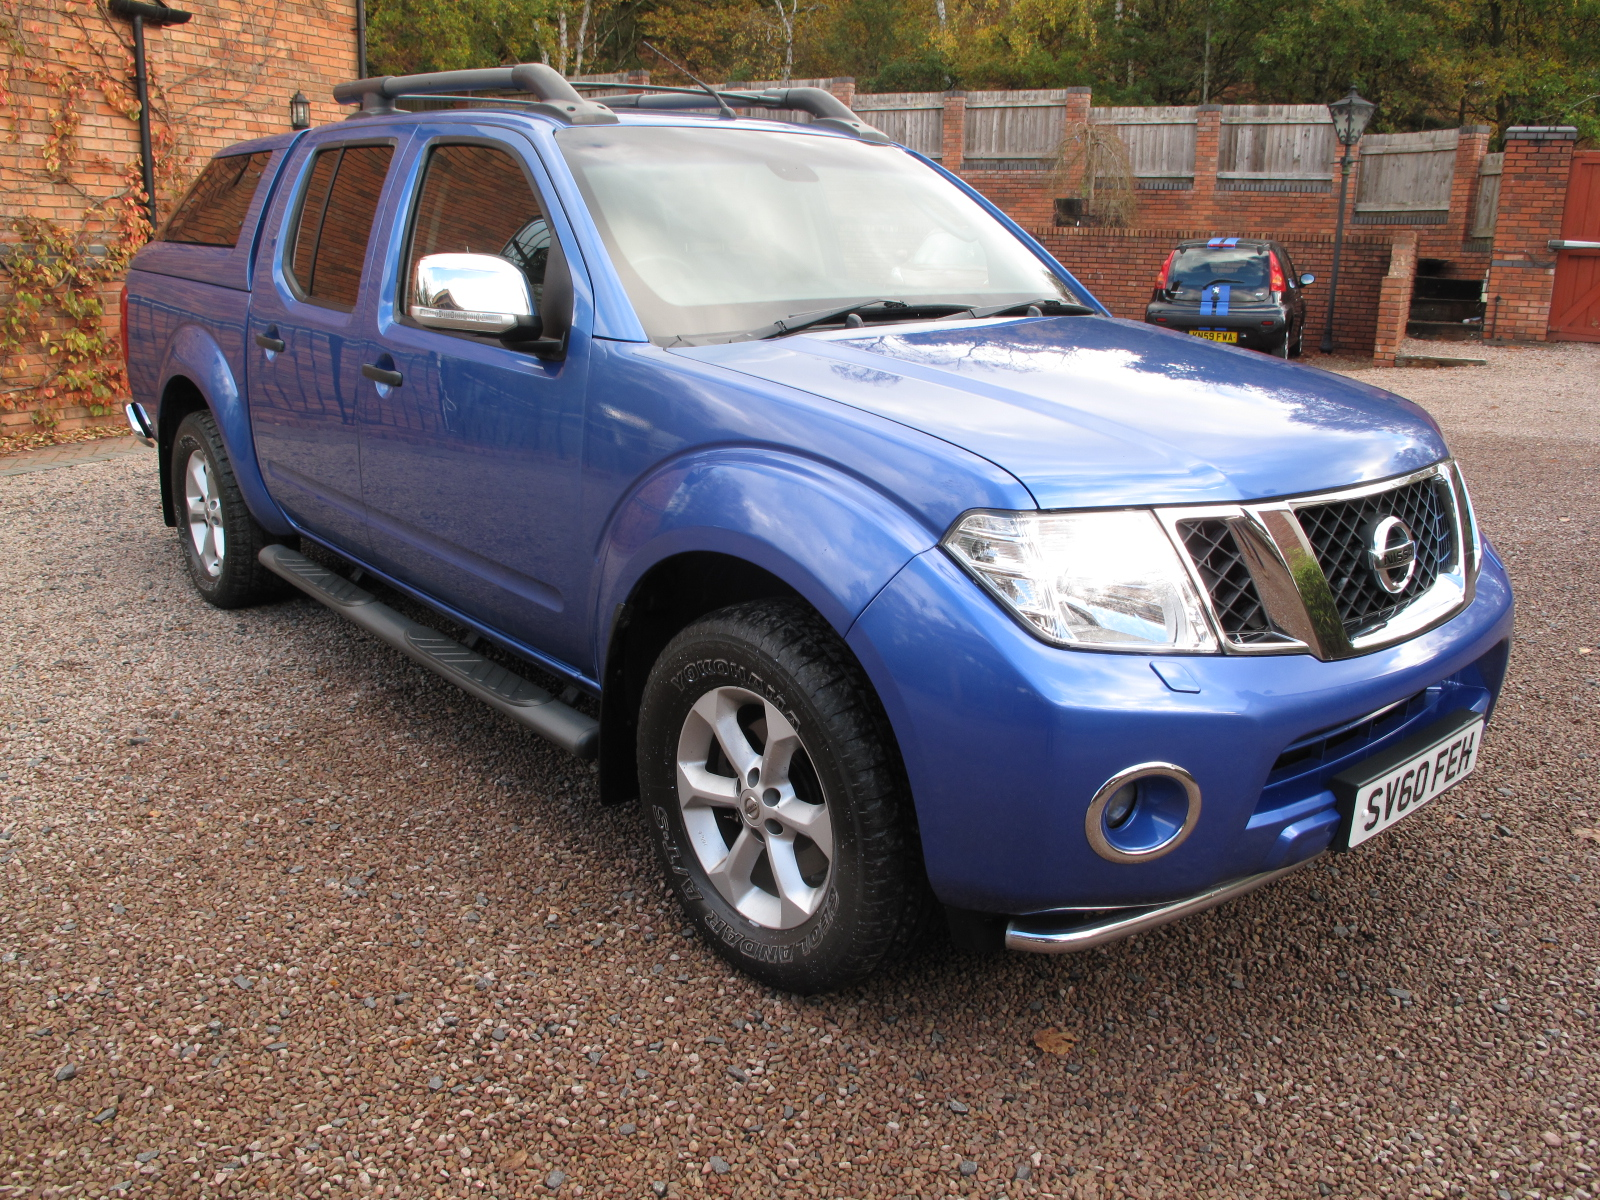 2010 60 Nissan Navara 2.5 dCi Tekna Premium Connect Double Cab Pickup 4WD ONLY 62K MILES, ABSOLUTELY PRISTINE CONDITION NO VAT!